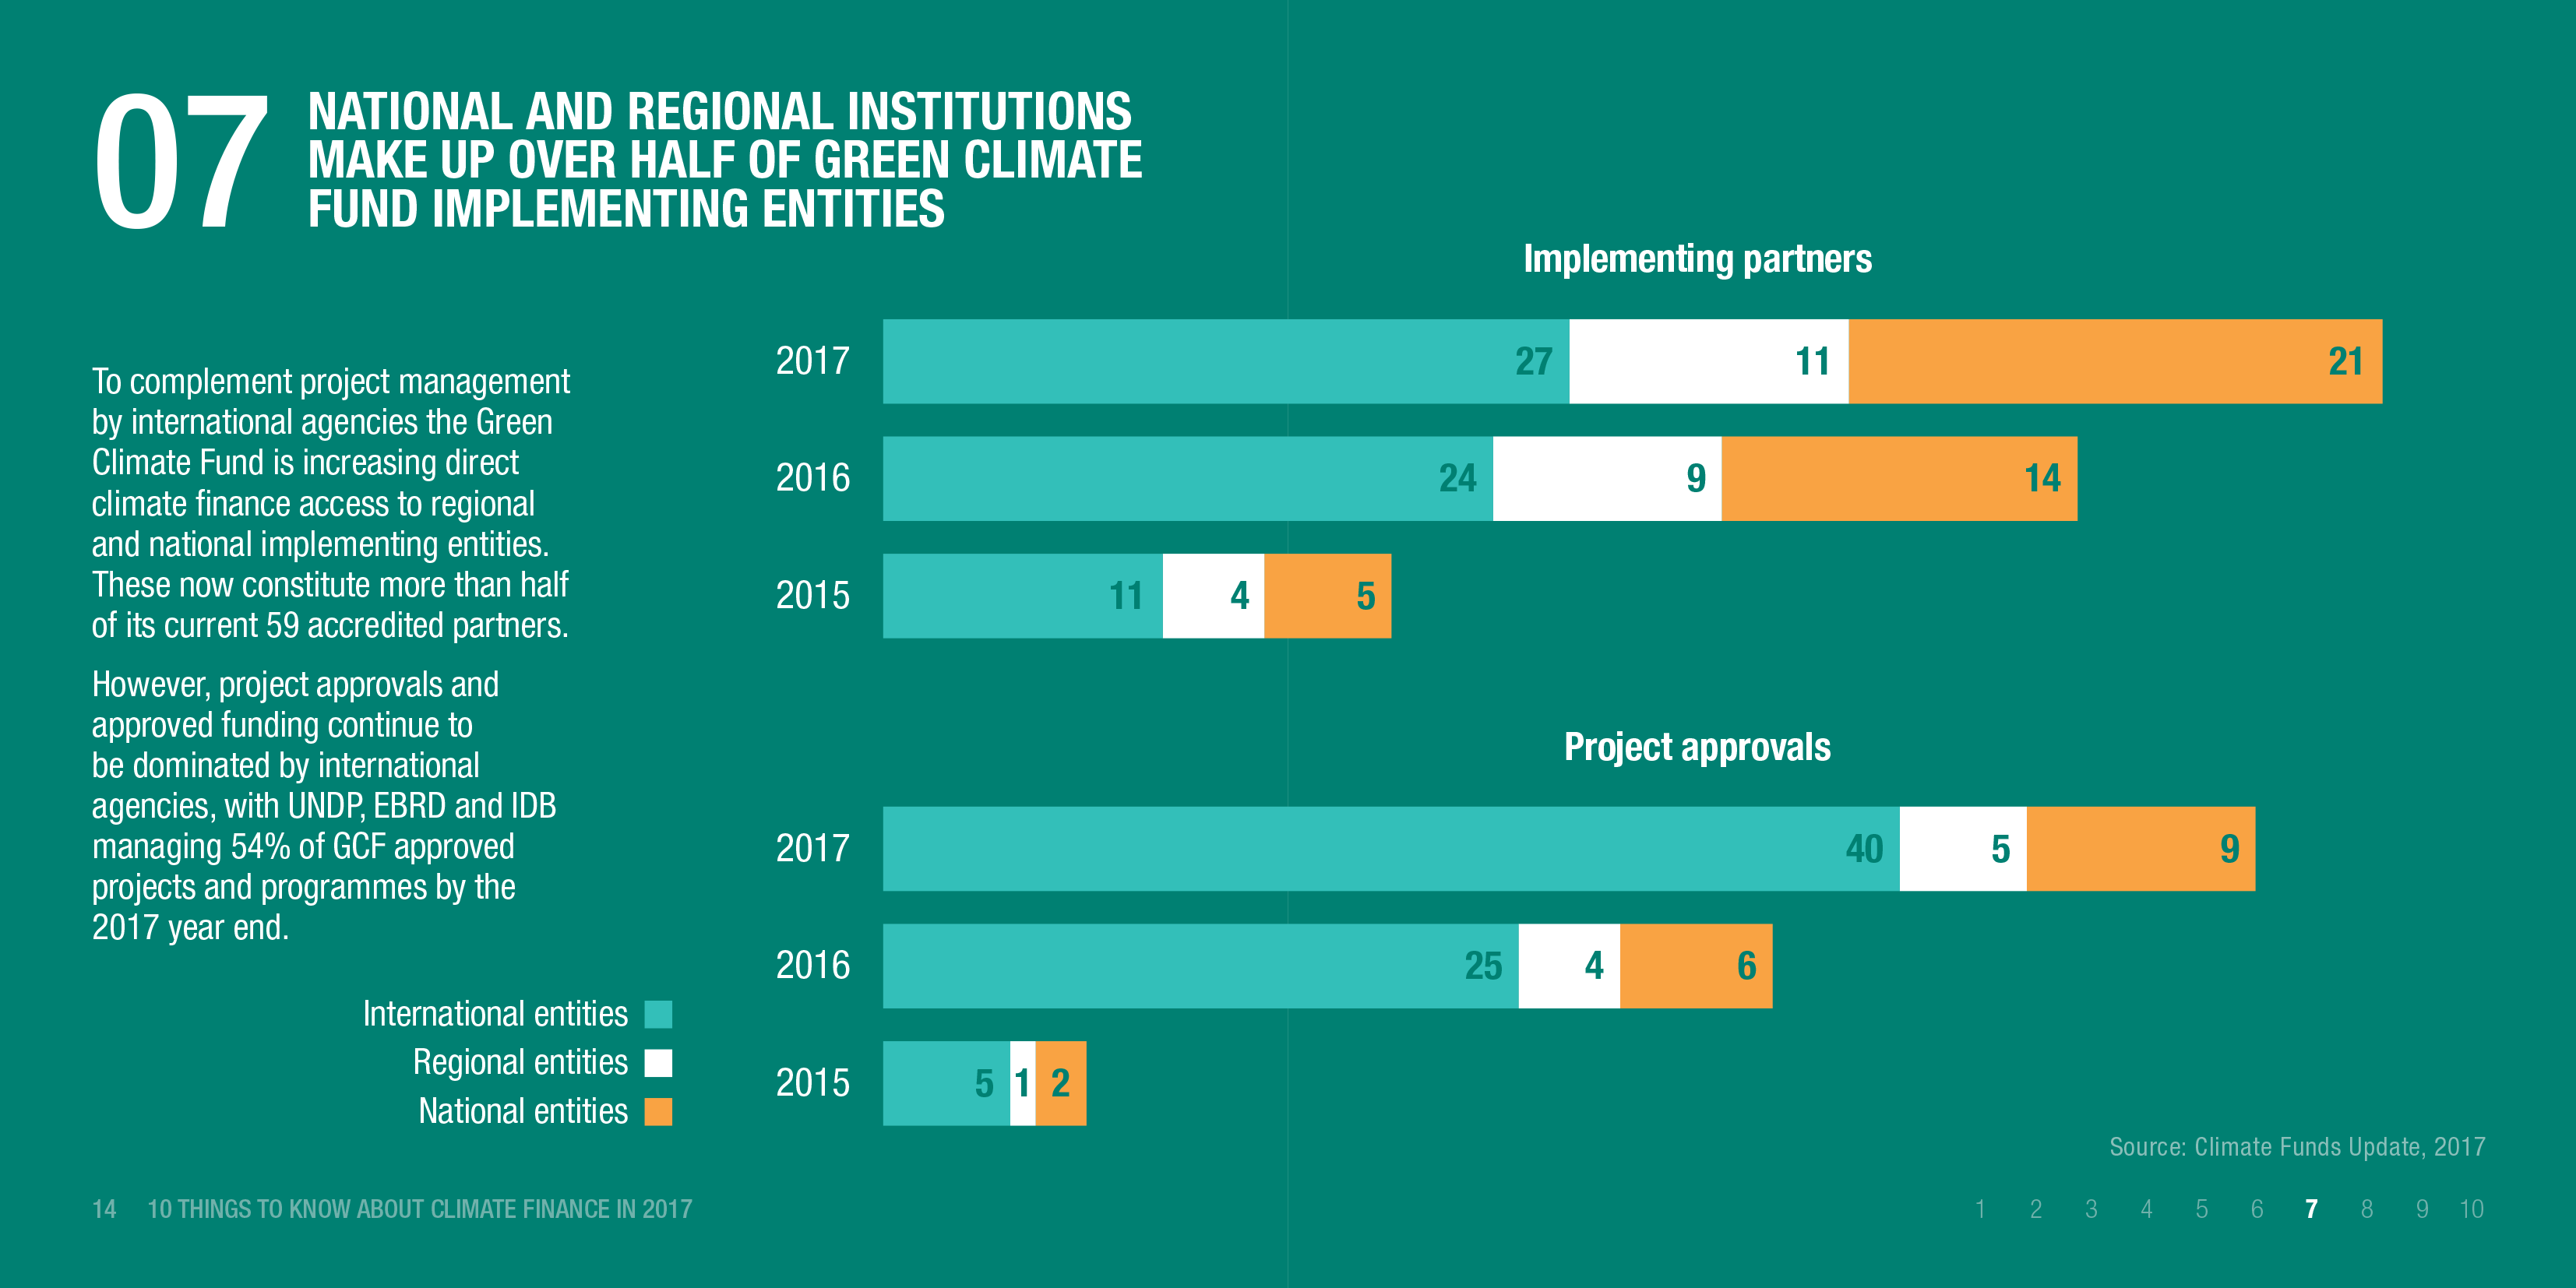 Infographic: National and regional institutions make up over half of Green Climate Fund implementing entities